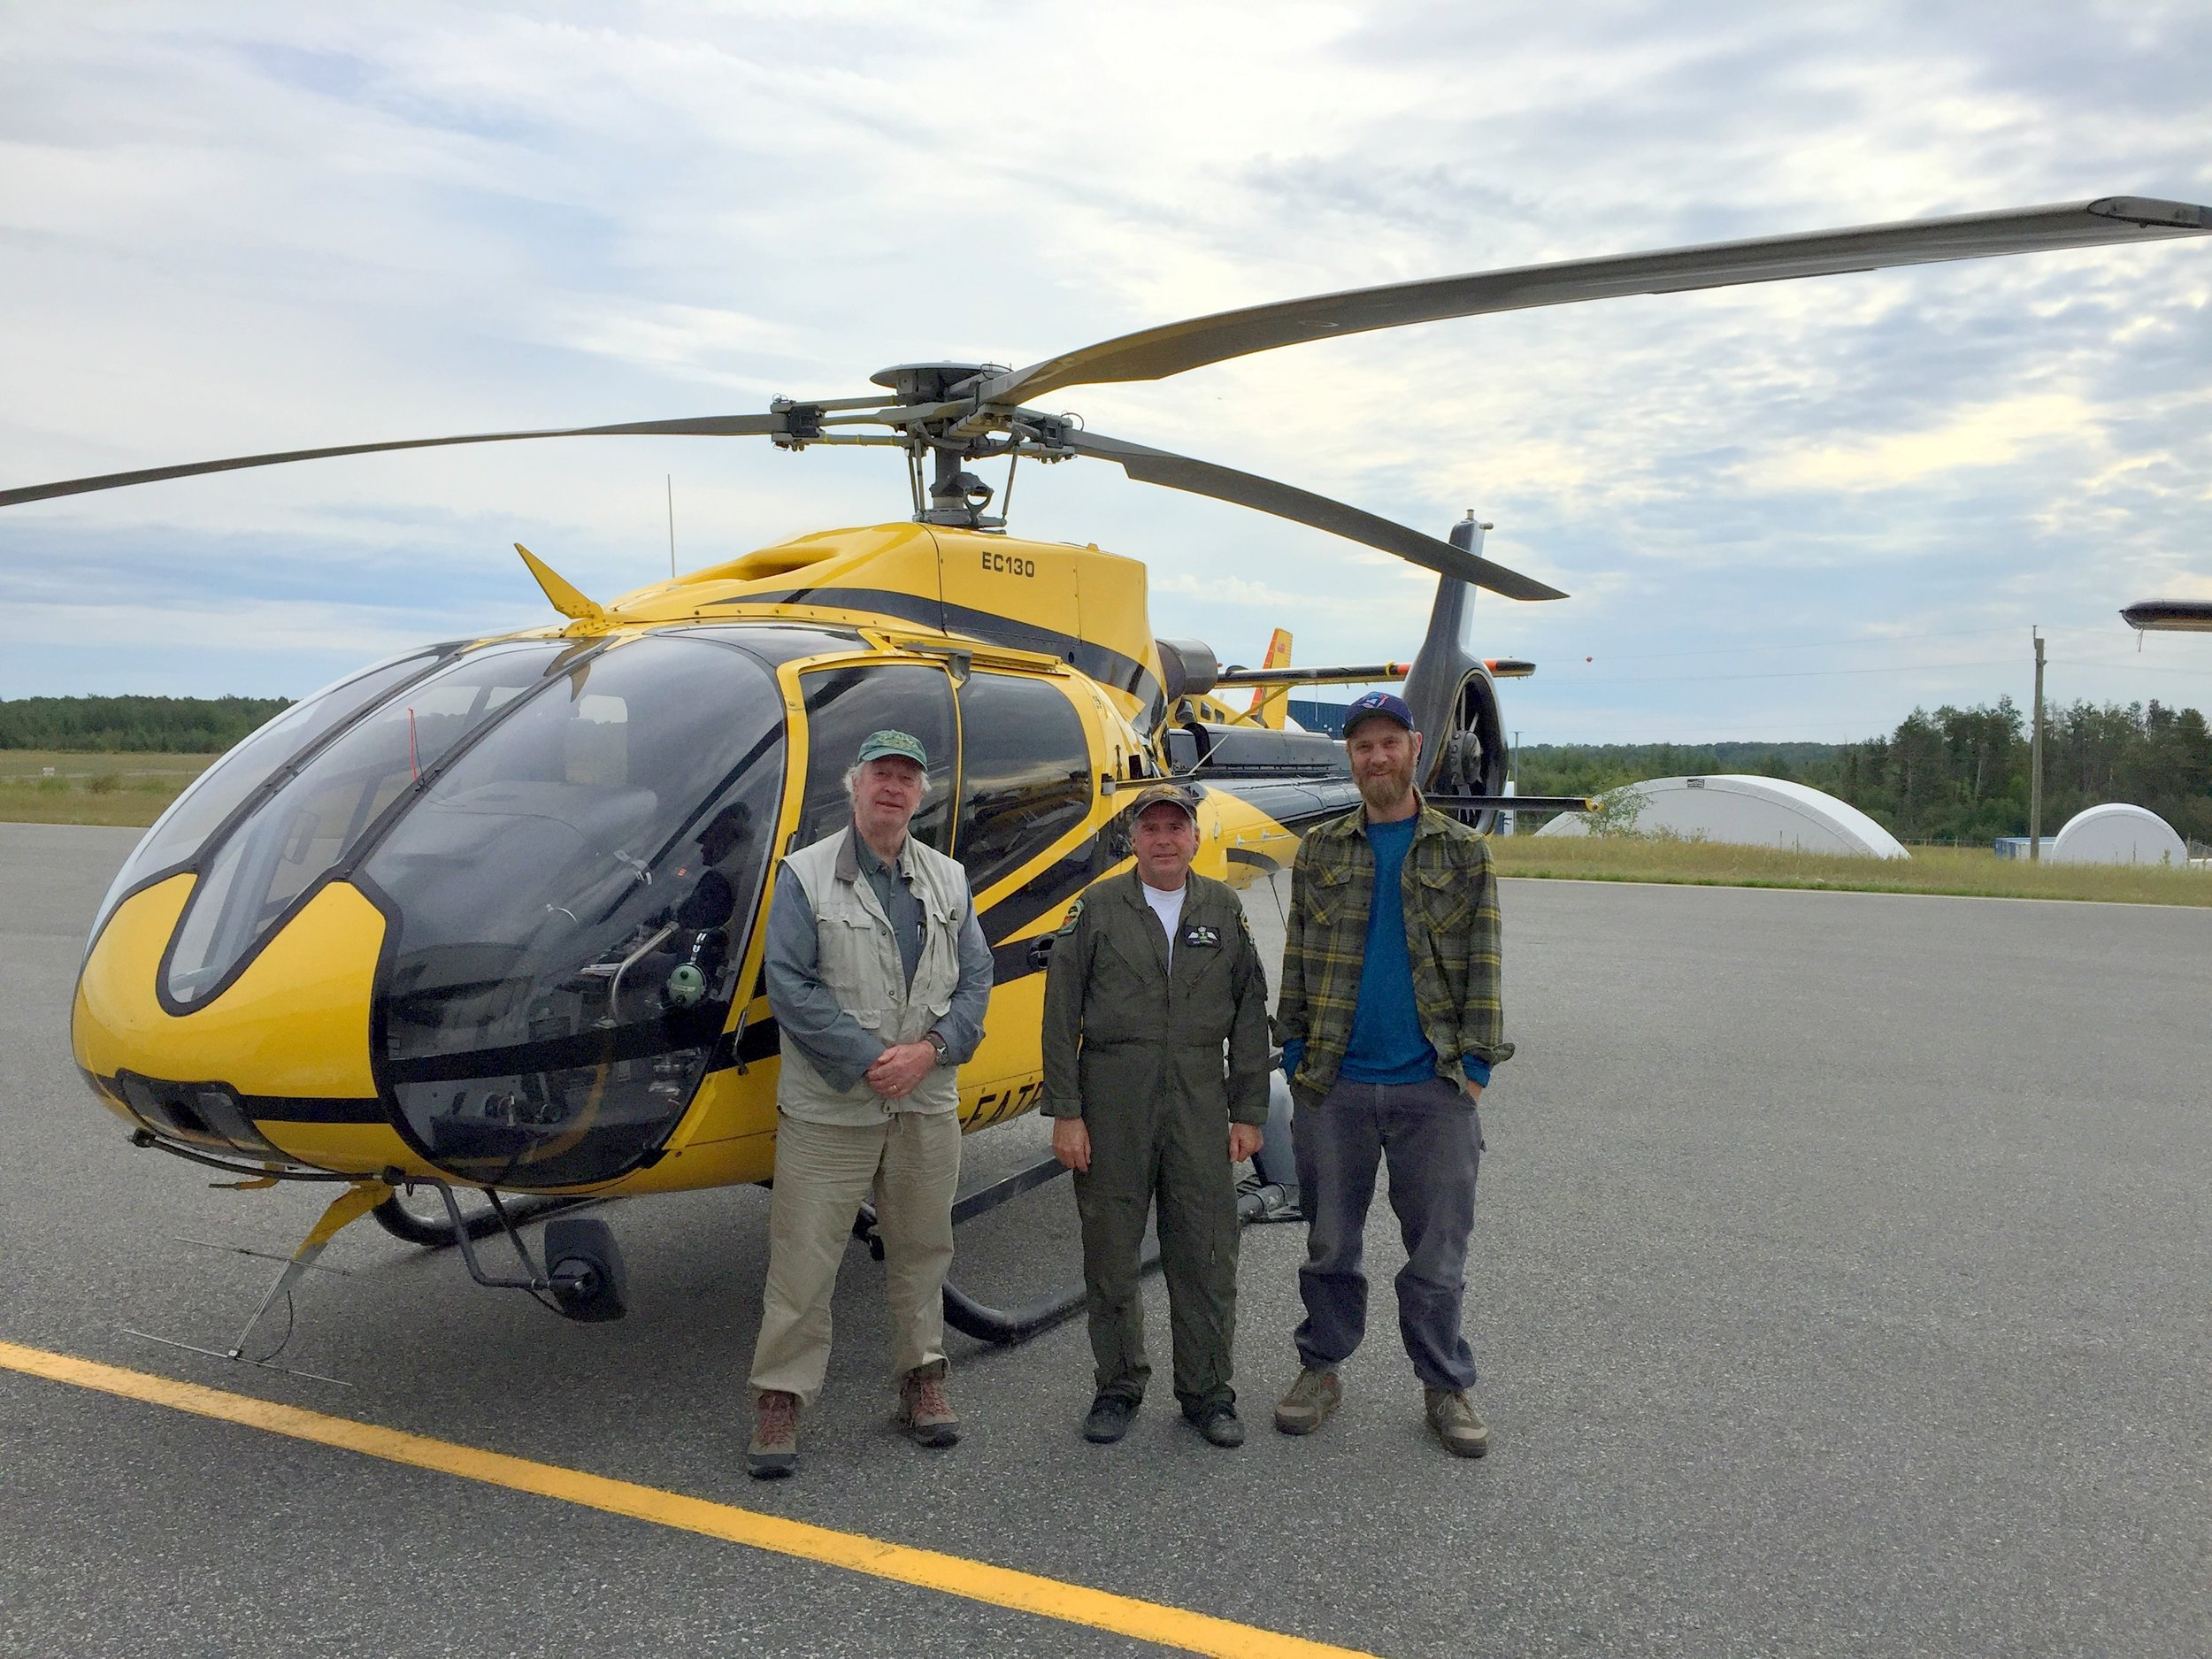 Aerial survey team (L-R): Guy Morrison, Dan Kennedy, Christian Friis.